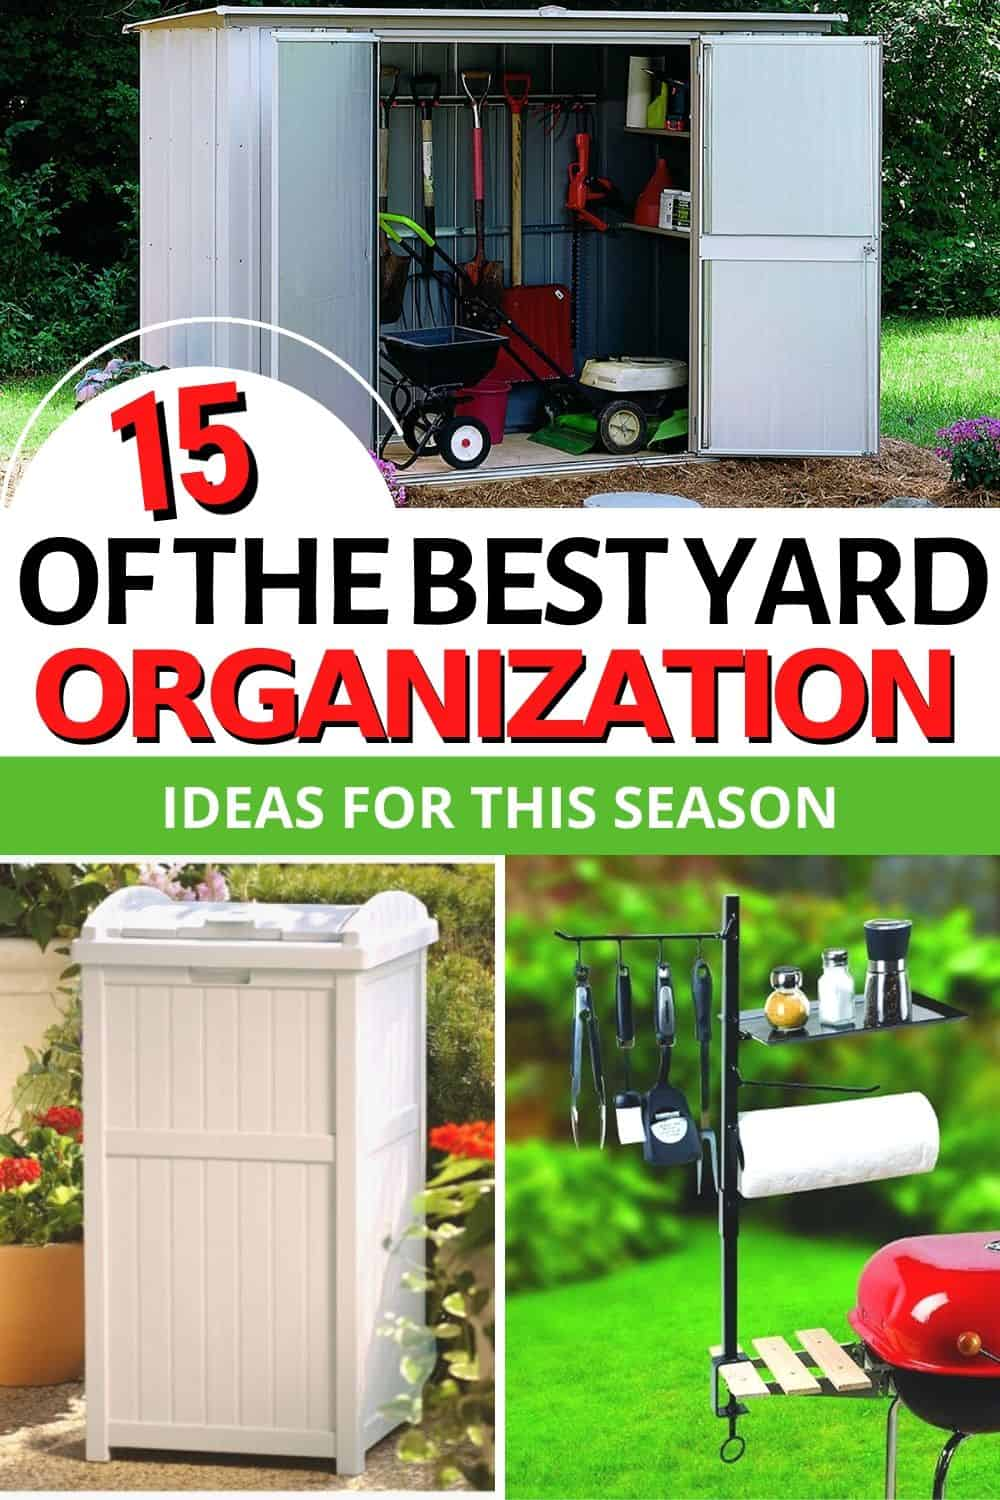 This spring, let's look at yard organization ideas to help take care of the exterior of our home. Get inspired by these ideas and start enjoying our yard. via @mystayathome